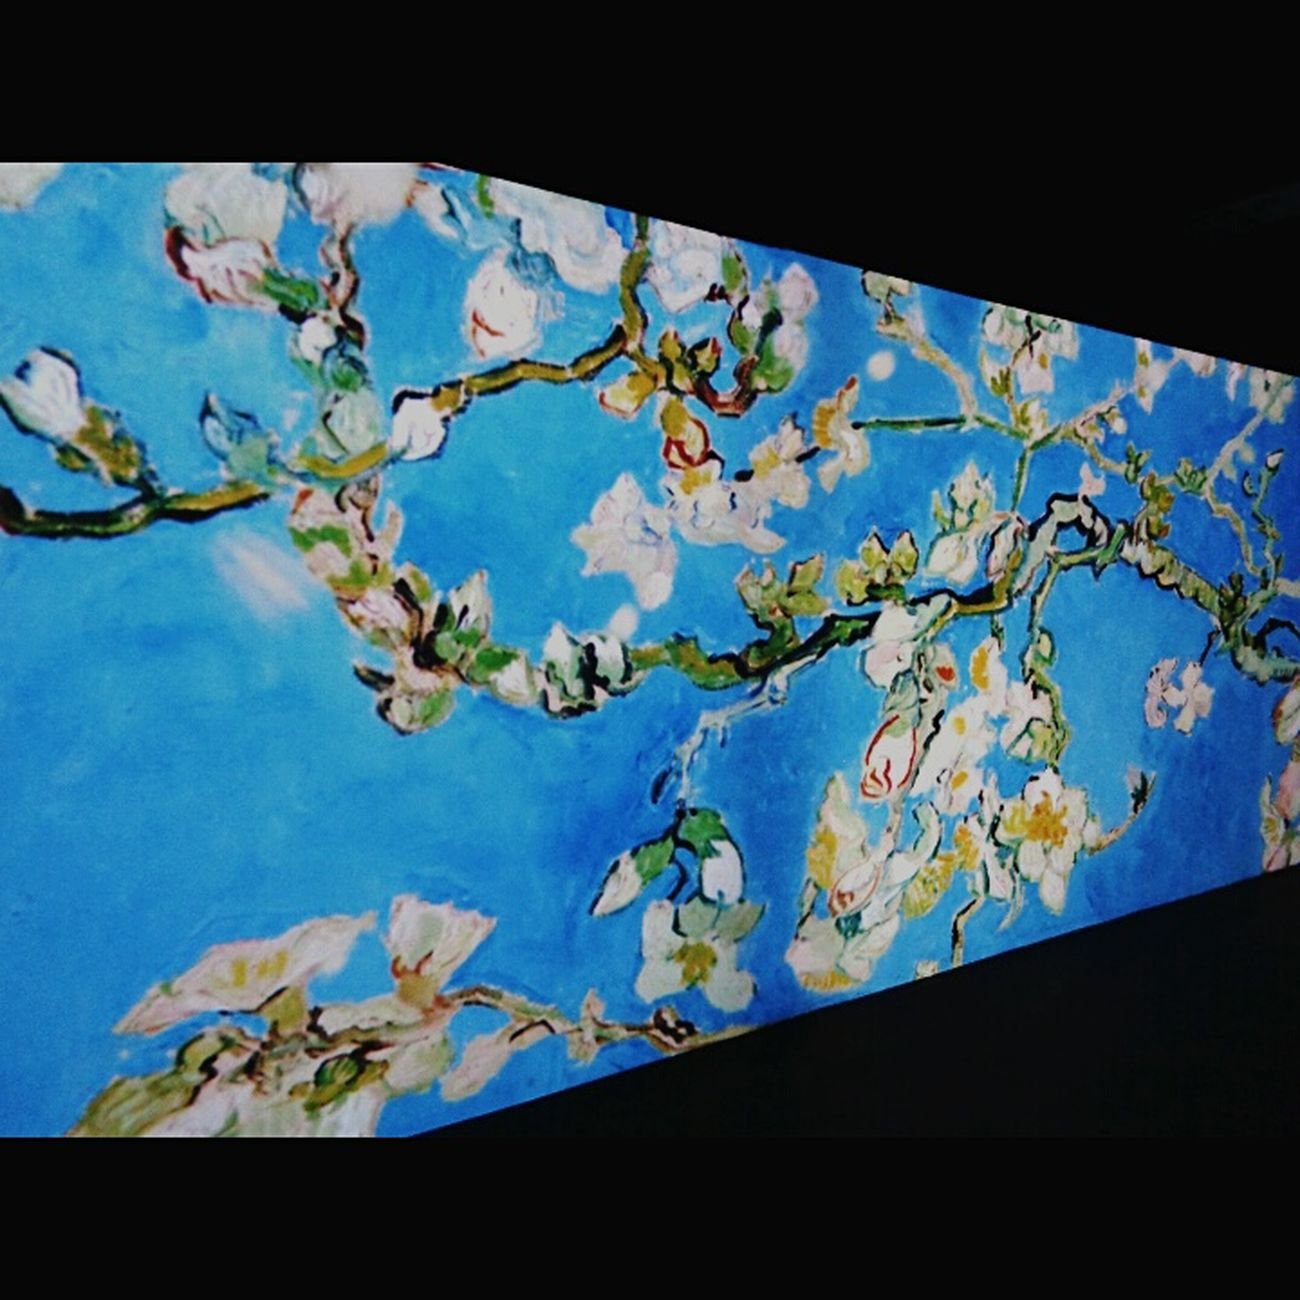 Flower Petals🌸 Blossoms  Vangoghalive Throwback Painting Art